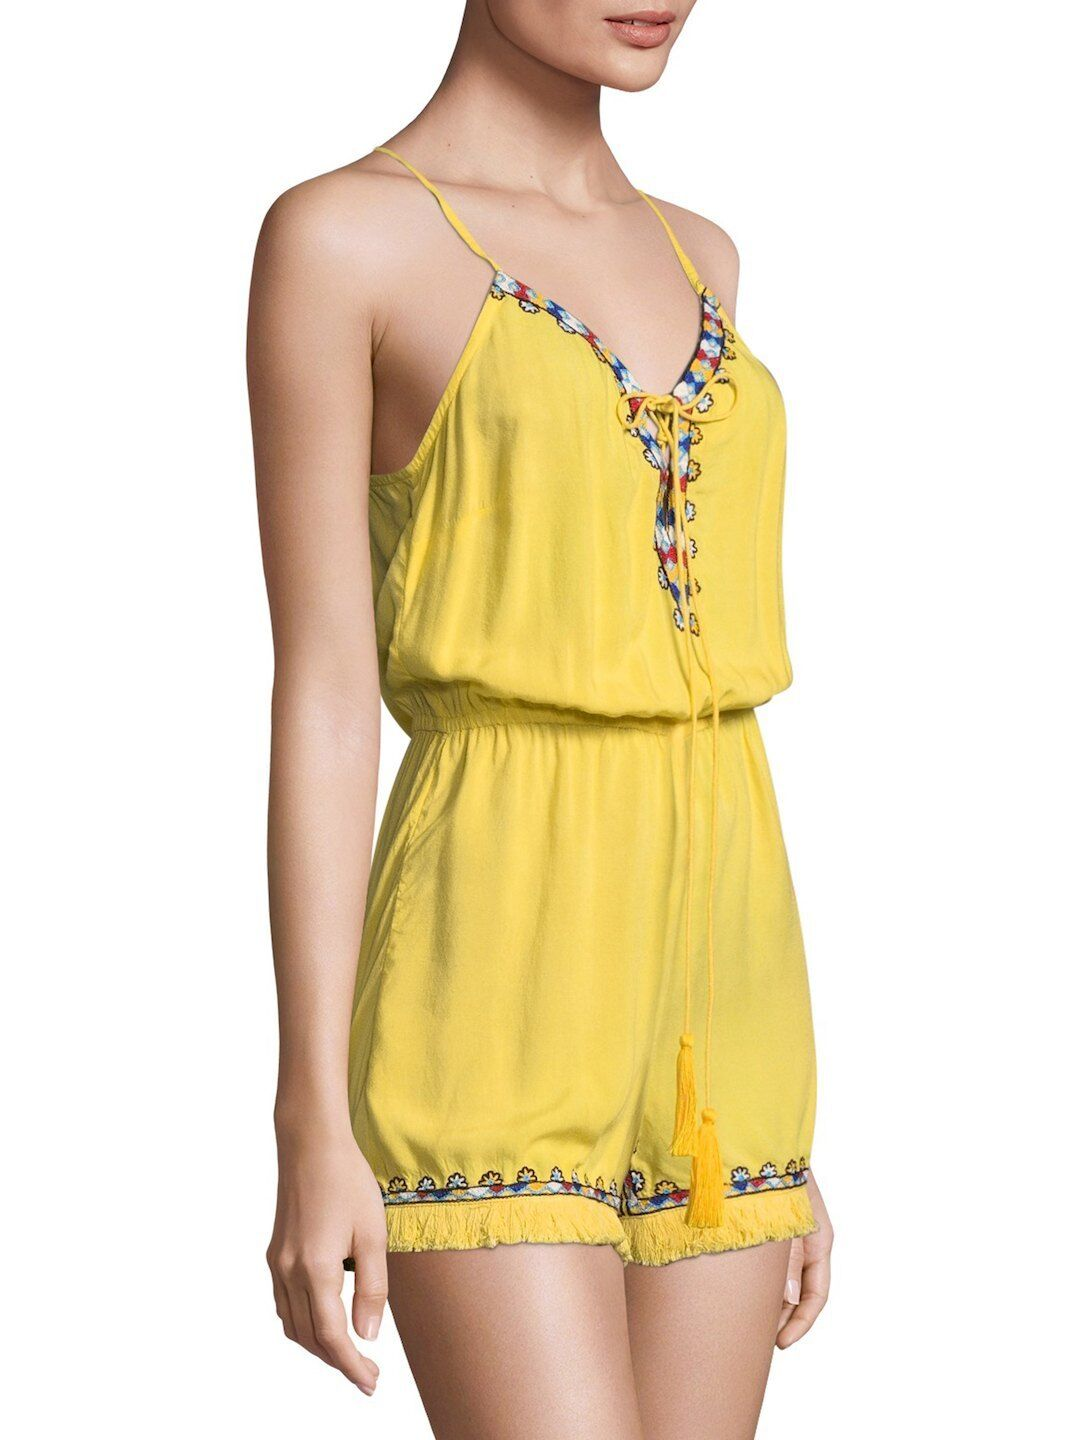 PIA PAURO Blazing Yellow Embroidered Drawstring Tassel Romper  213 SAKS Size M